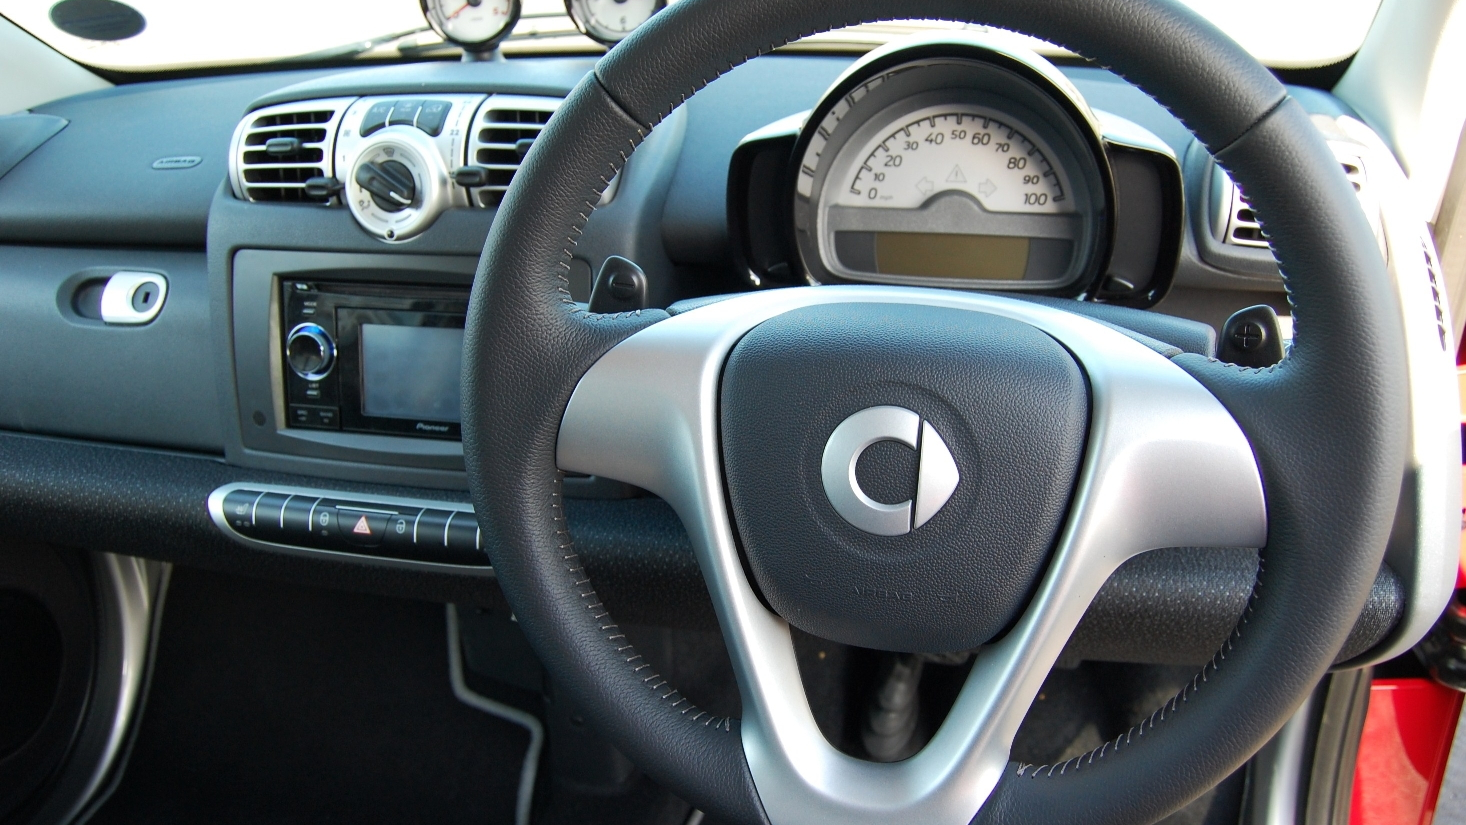 2010 Smart ForTwo Cdi